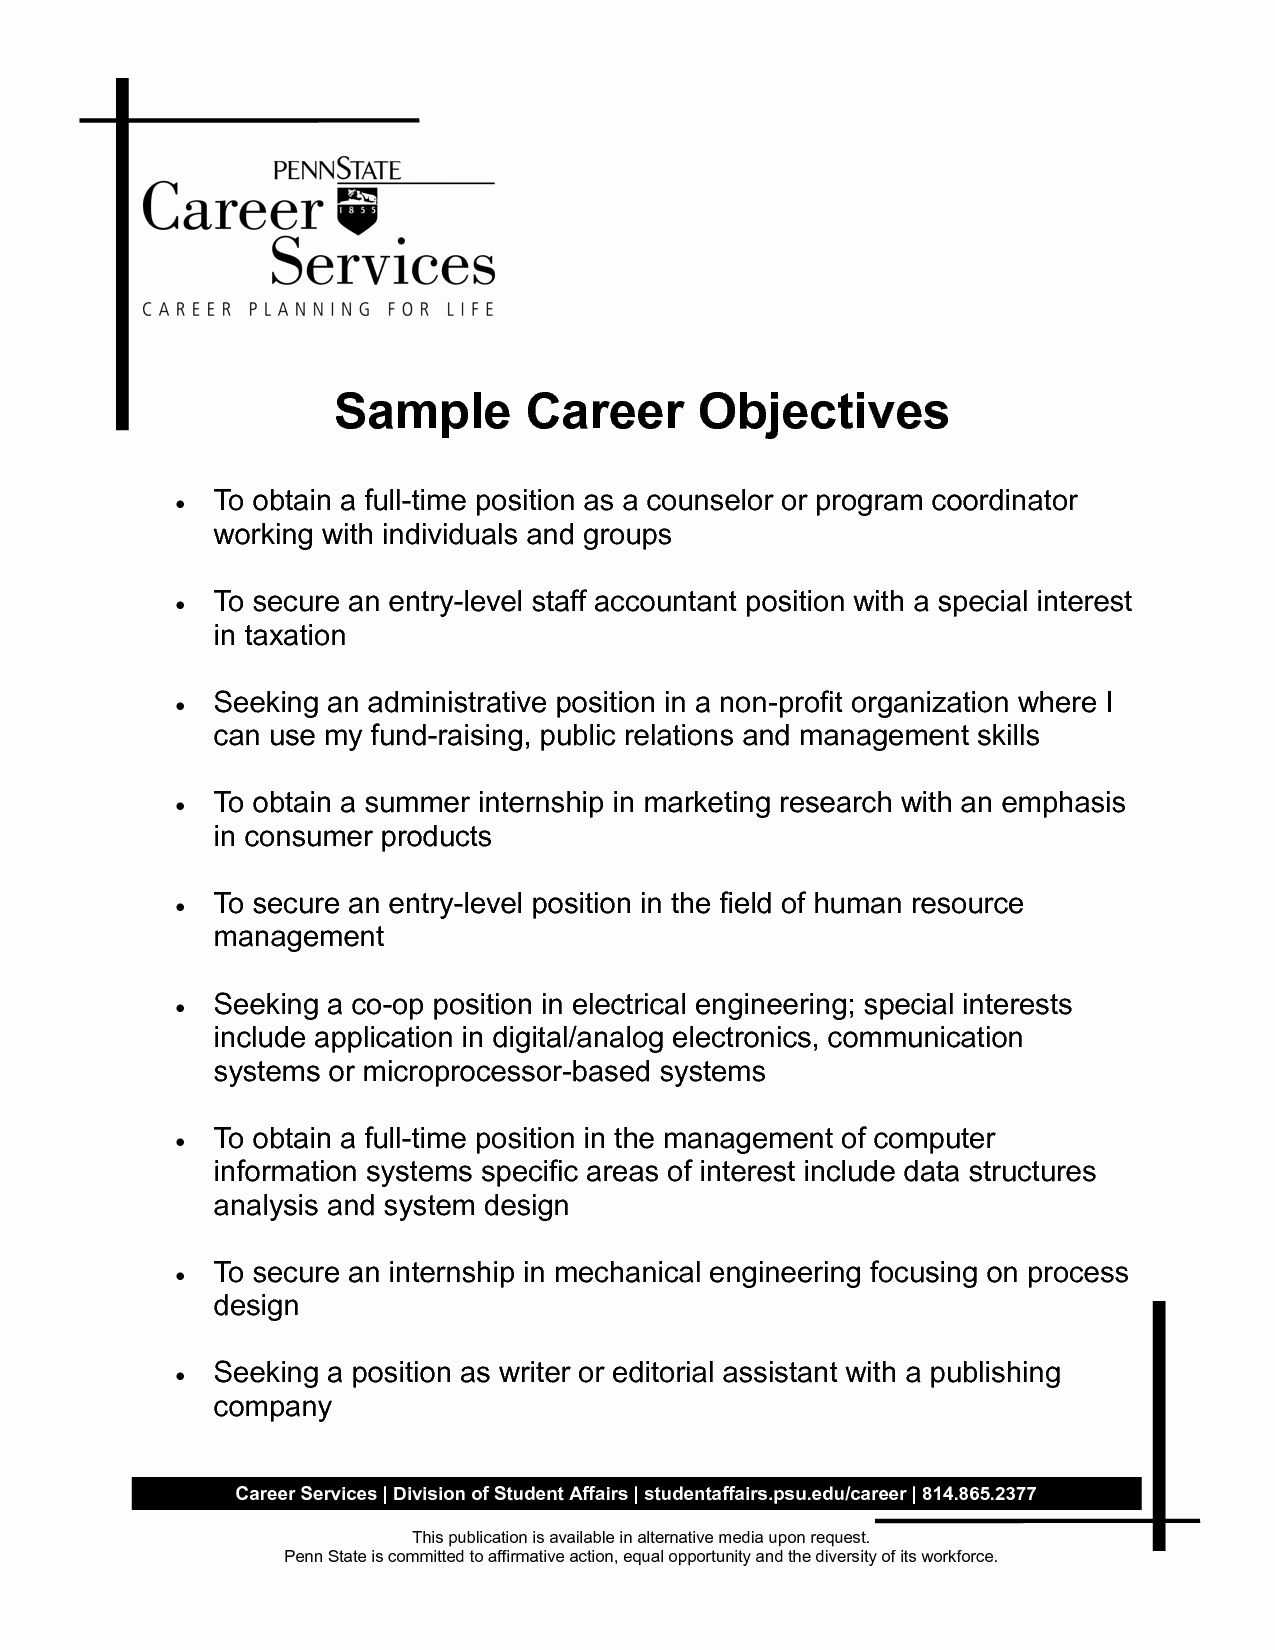 Personal Goal Statement Awesome Personal Objective Statement Examples as to why